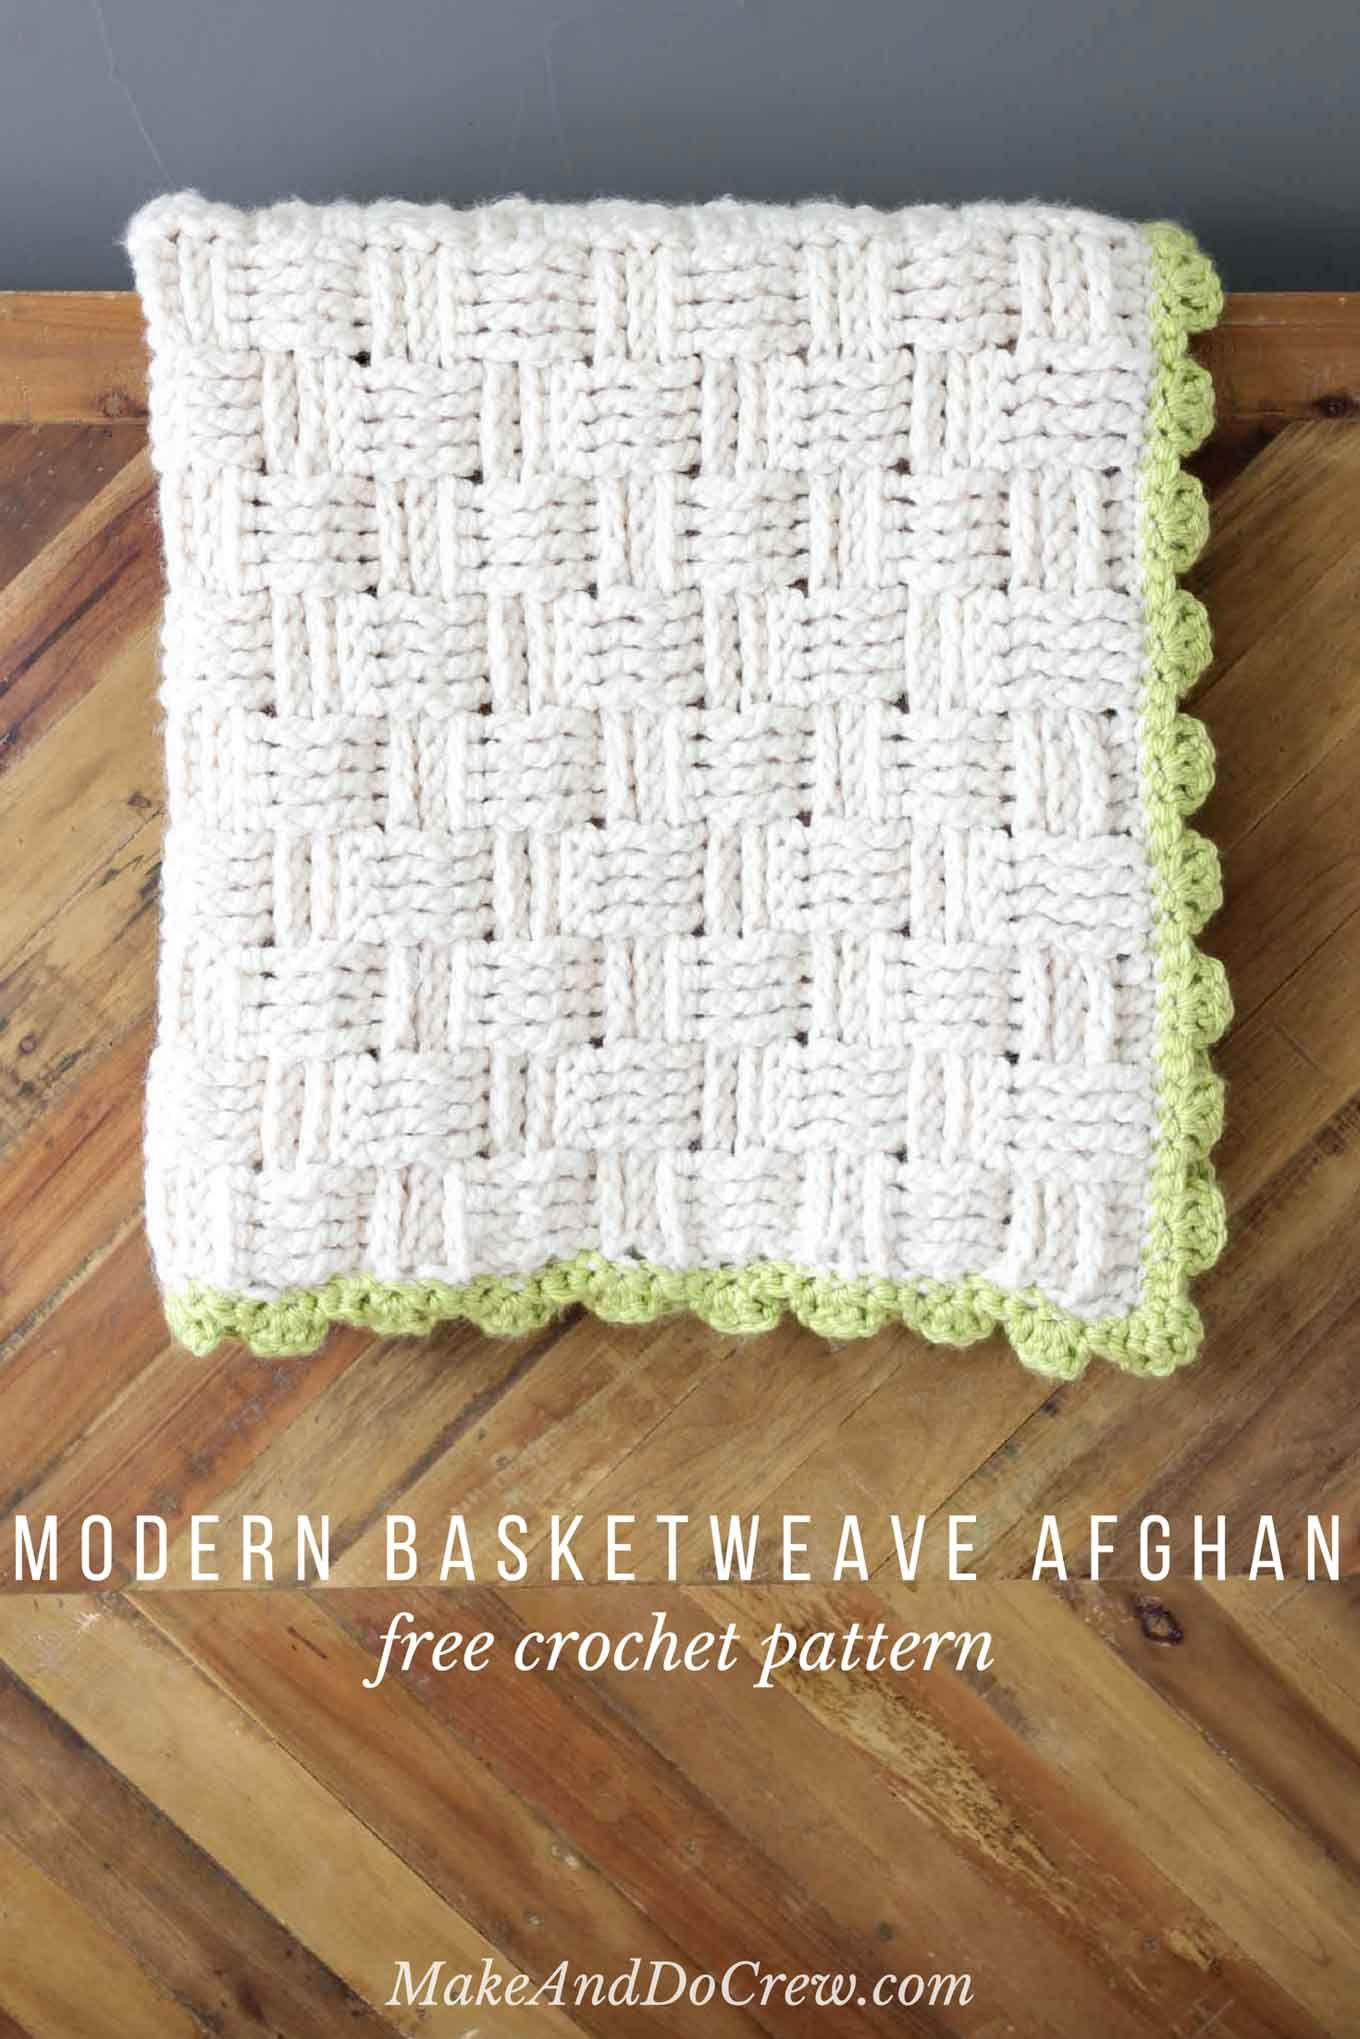 Crochet Blanket Patterns Free Magnificent Design